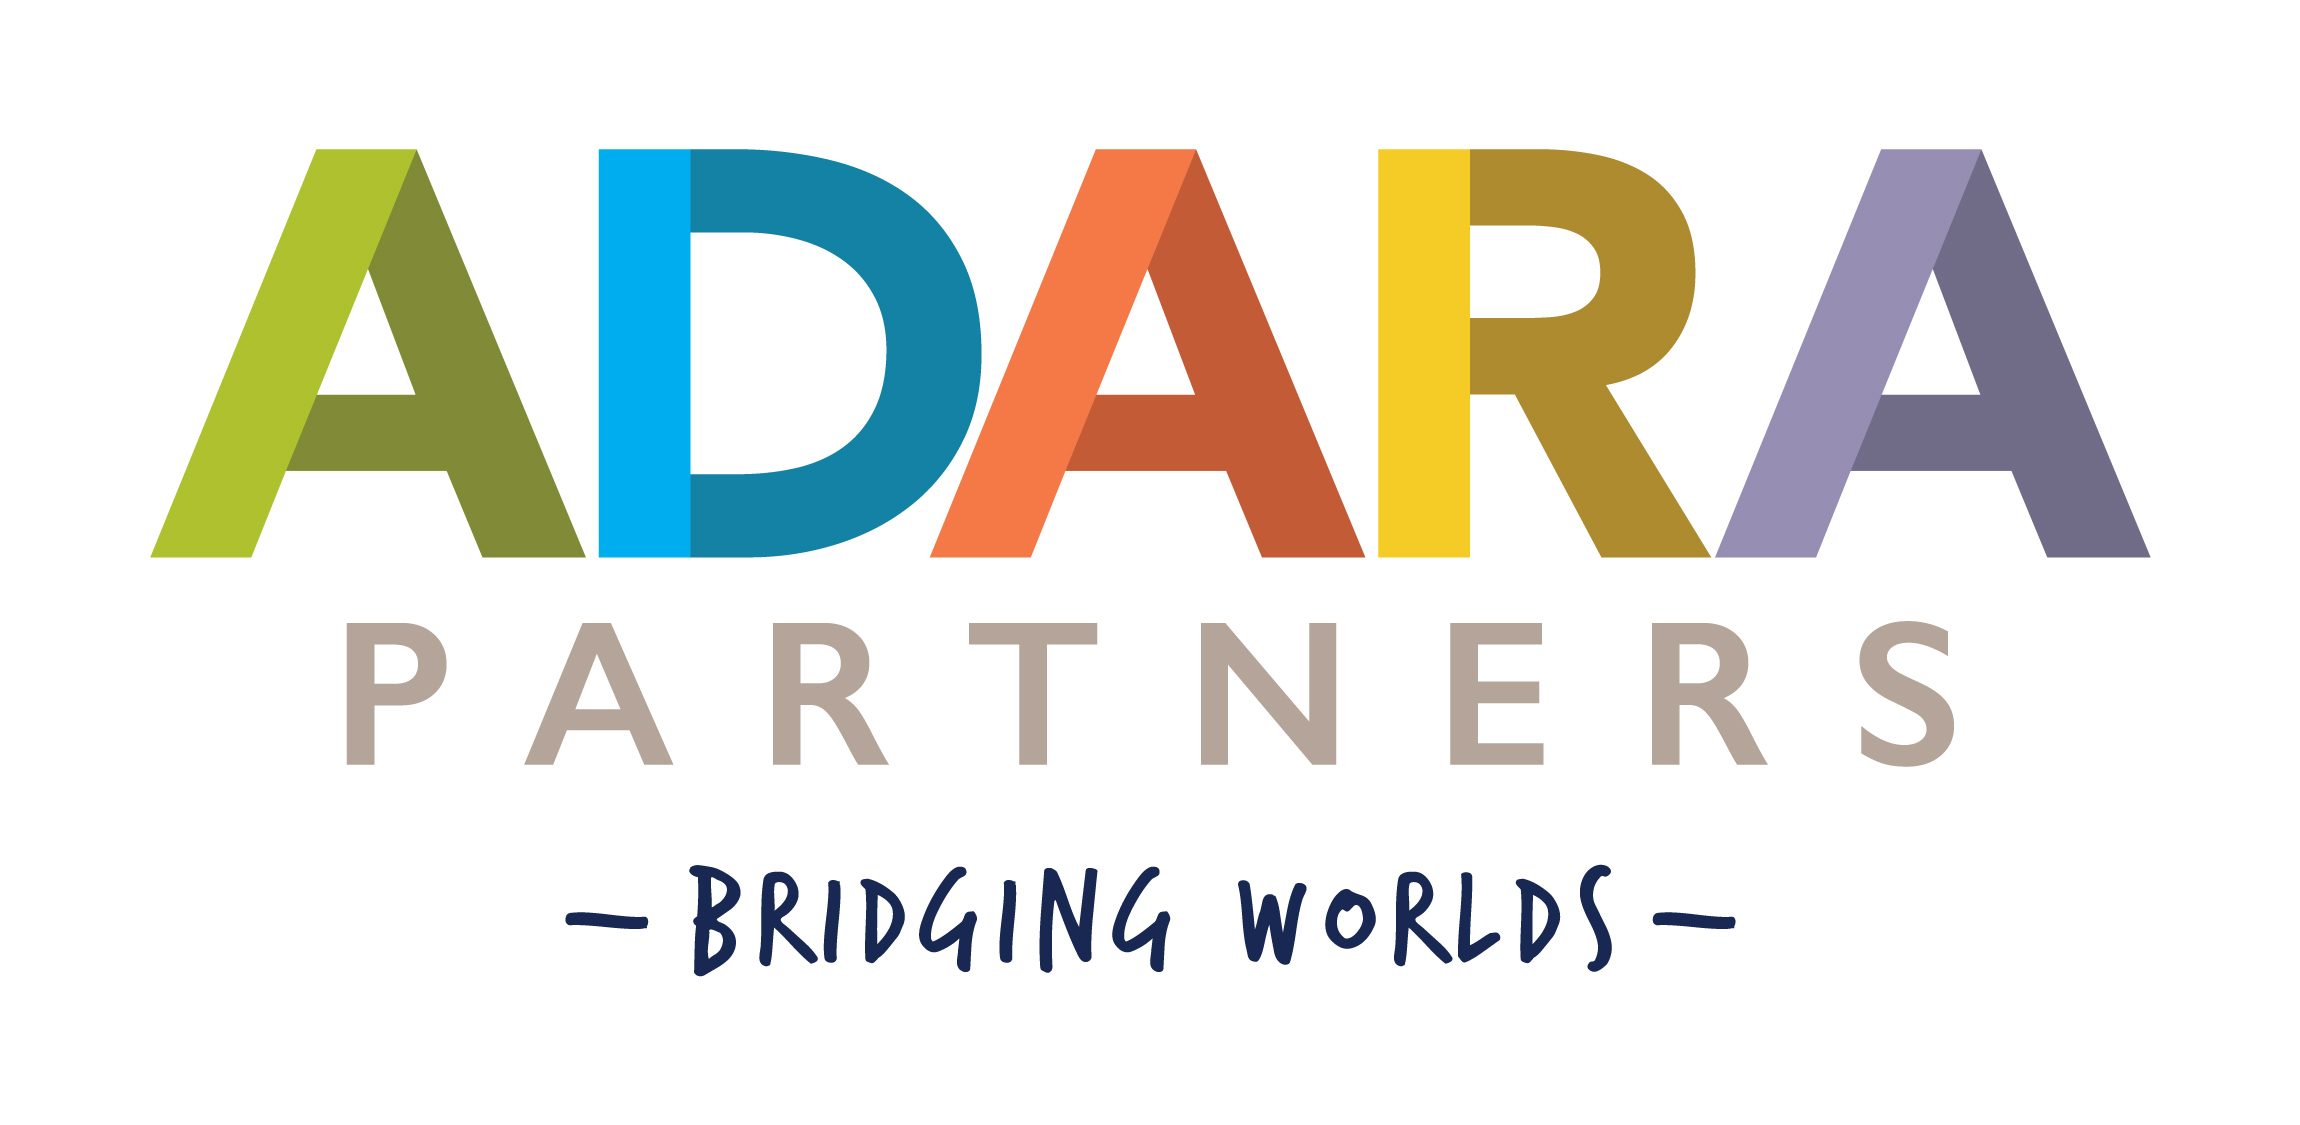 Adara Partners is a top-tier corporate advisory firm, providing independent financial and strategic advice and complex commercial problem solving services to leading Australian companies. 100% of profits generated on assignments go to directly benefit women and children living in extreme poverty. The Adara Panel Member structure brings together some of Australia's most senior leaders in financial services. As Adara Panel Members, they provide wise counsel and senior advice to clients, with their time, effort and expertise donated to Adara Partners. This allows for maximum generation of profits to support people living in poverty in the developing world. Adara Panel Members undertake this role separately from their other professional and home firm commitments, which remain unchanged.